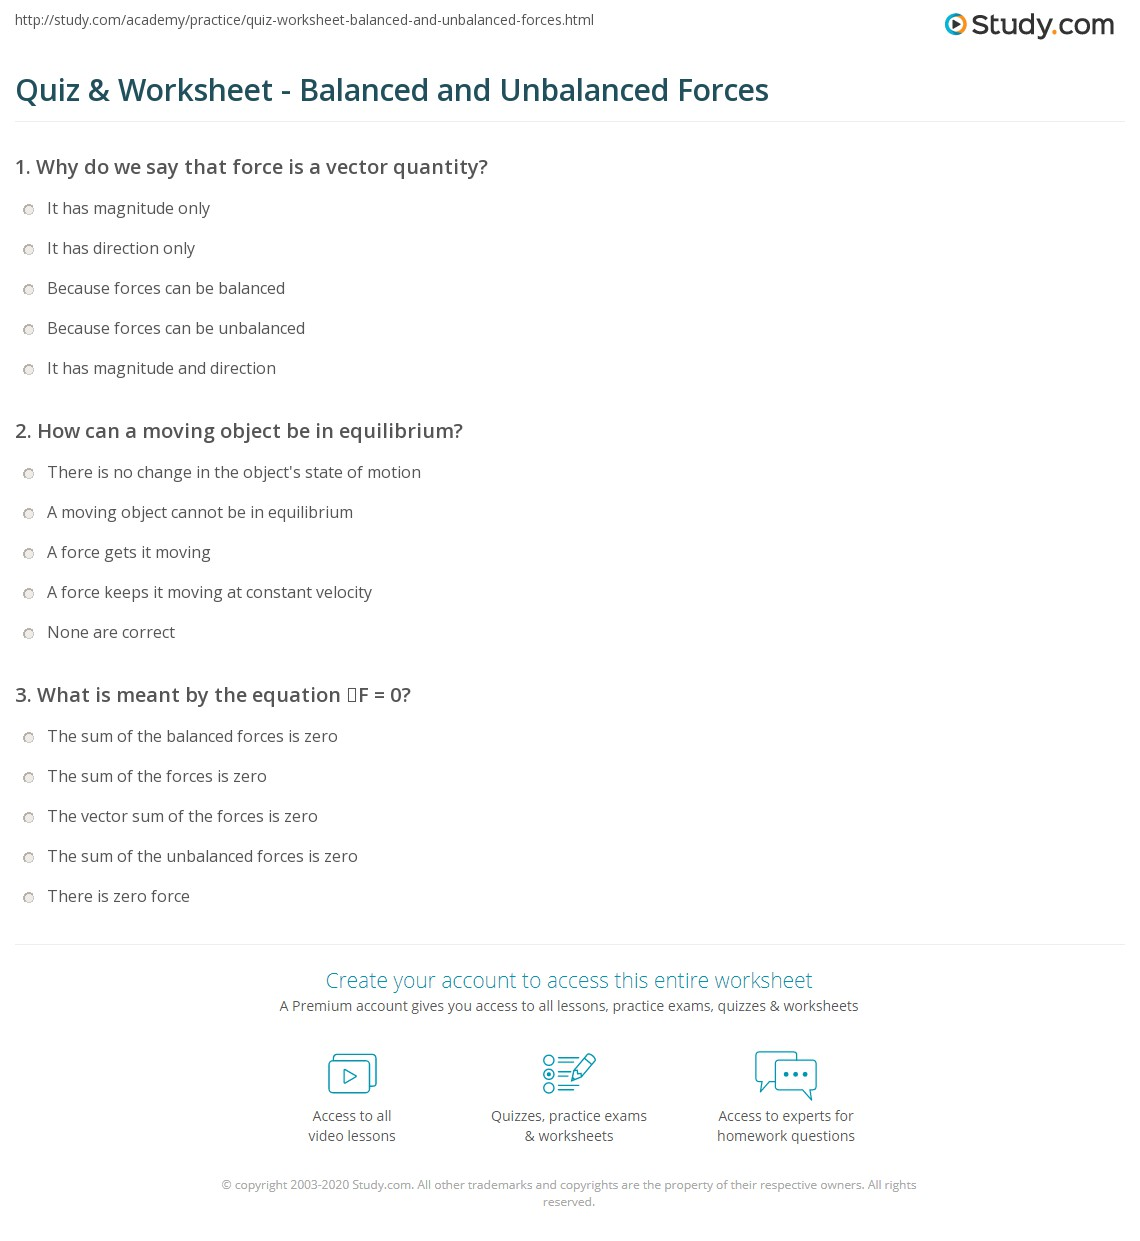 Quiz & Worksheet - Balanced and Unbalanced Forces | Study.com